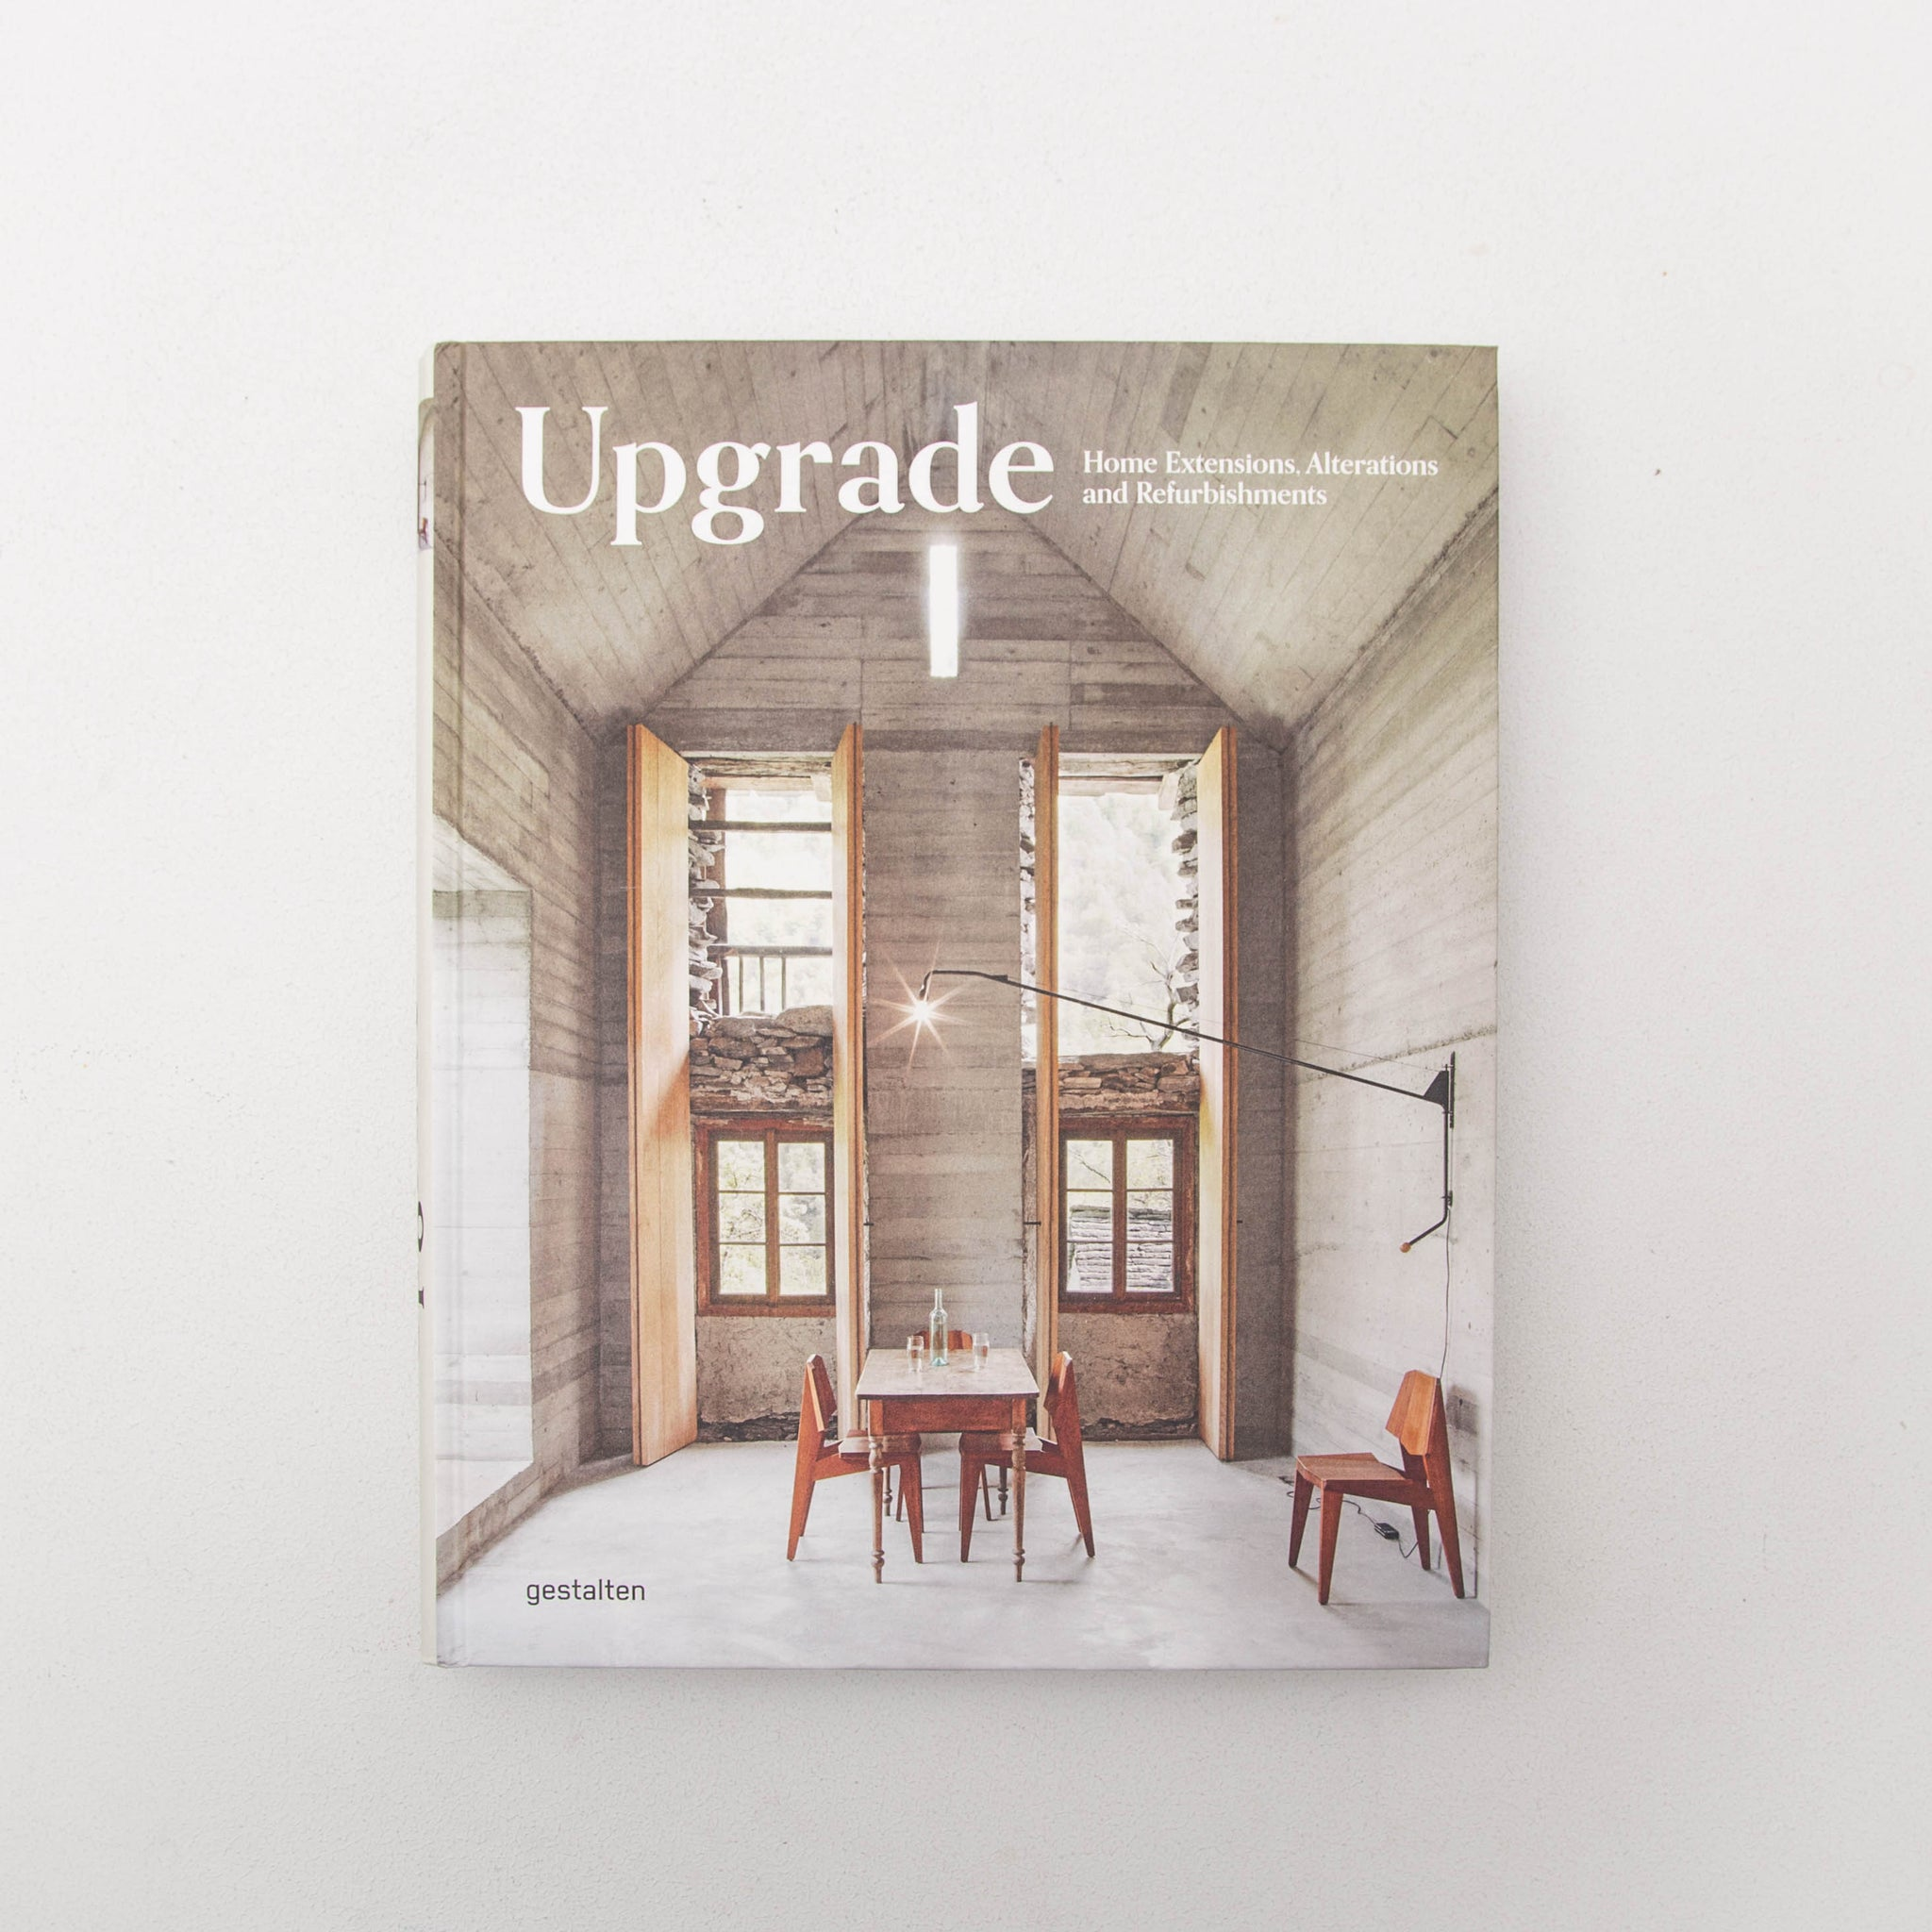 Upgrade: Home Extensions, Alterations and Refurbishments Book - Front | AStore